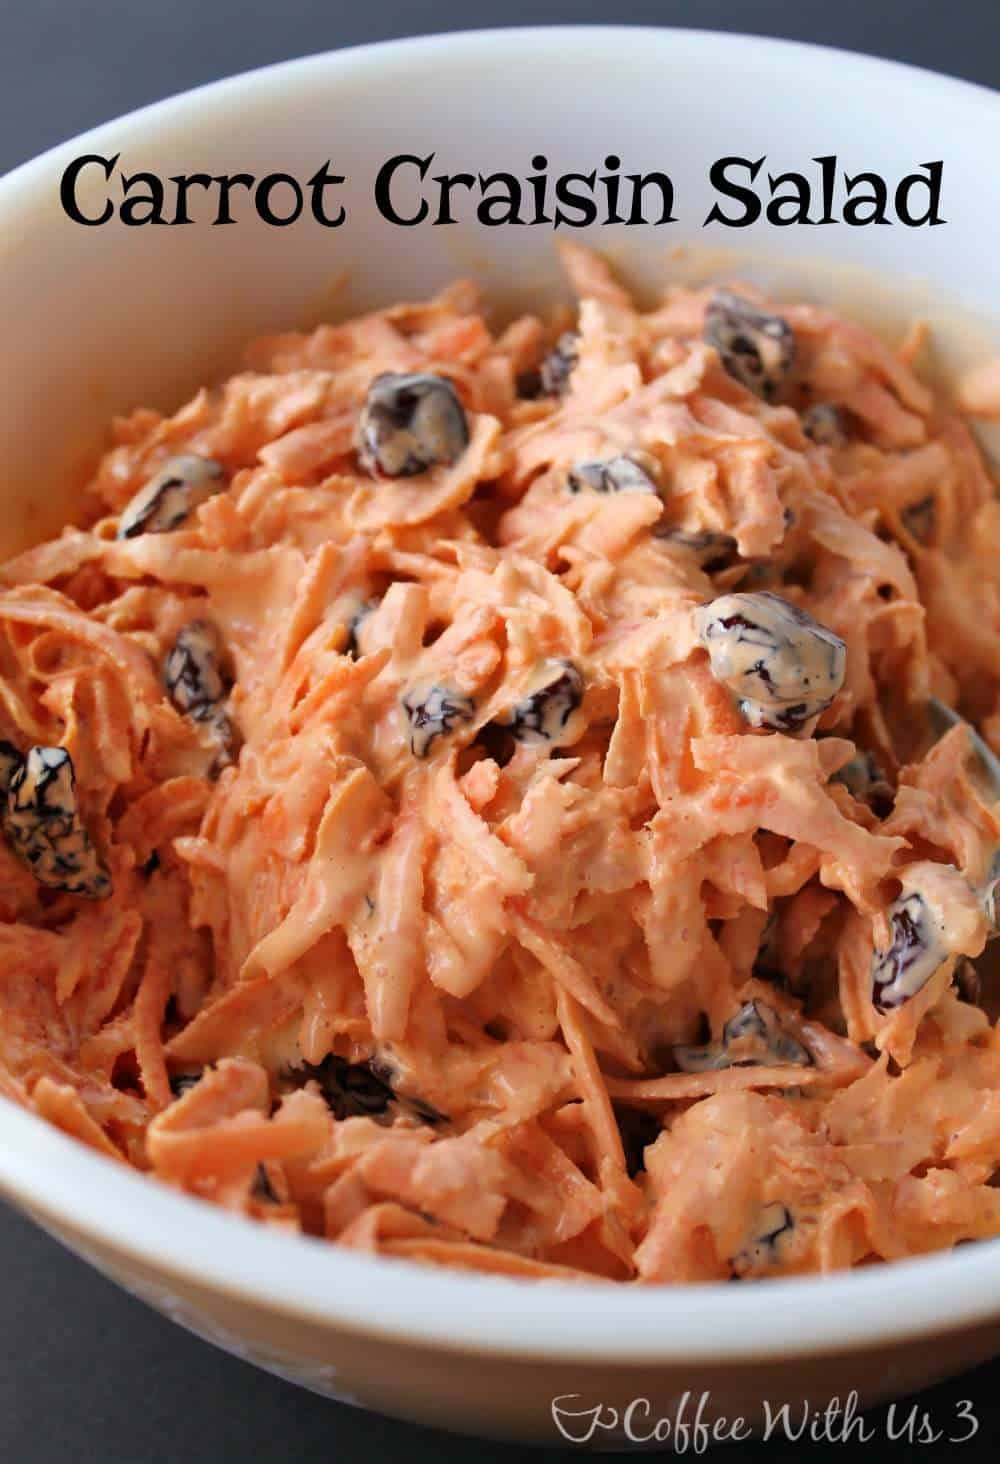 It only takes 3 ingredients and 5 minutes to make this delicious Carrot Craisin Salad!